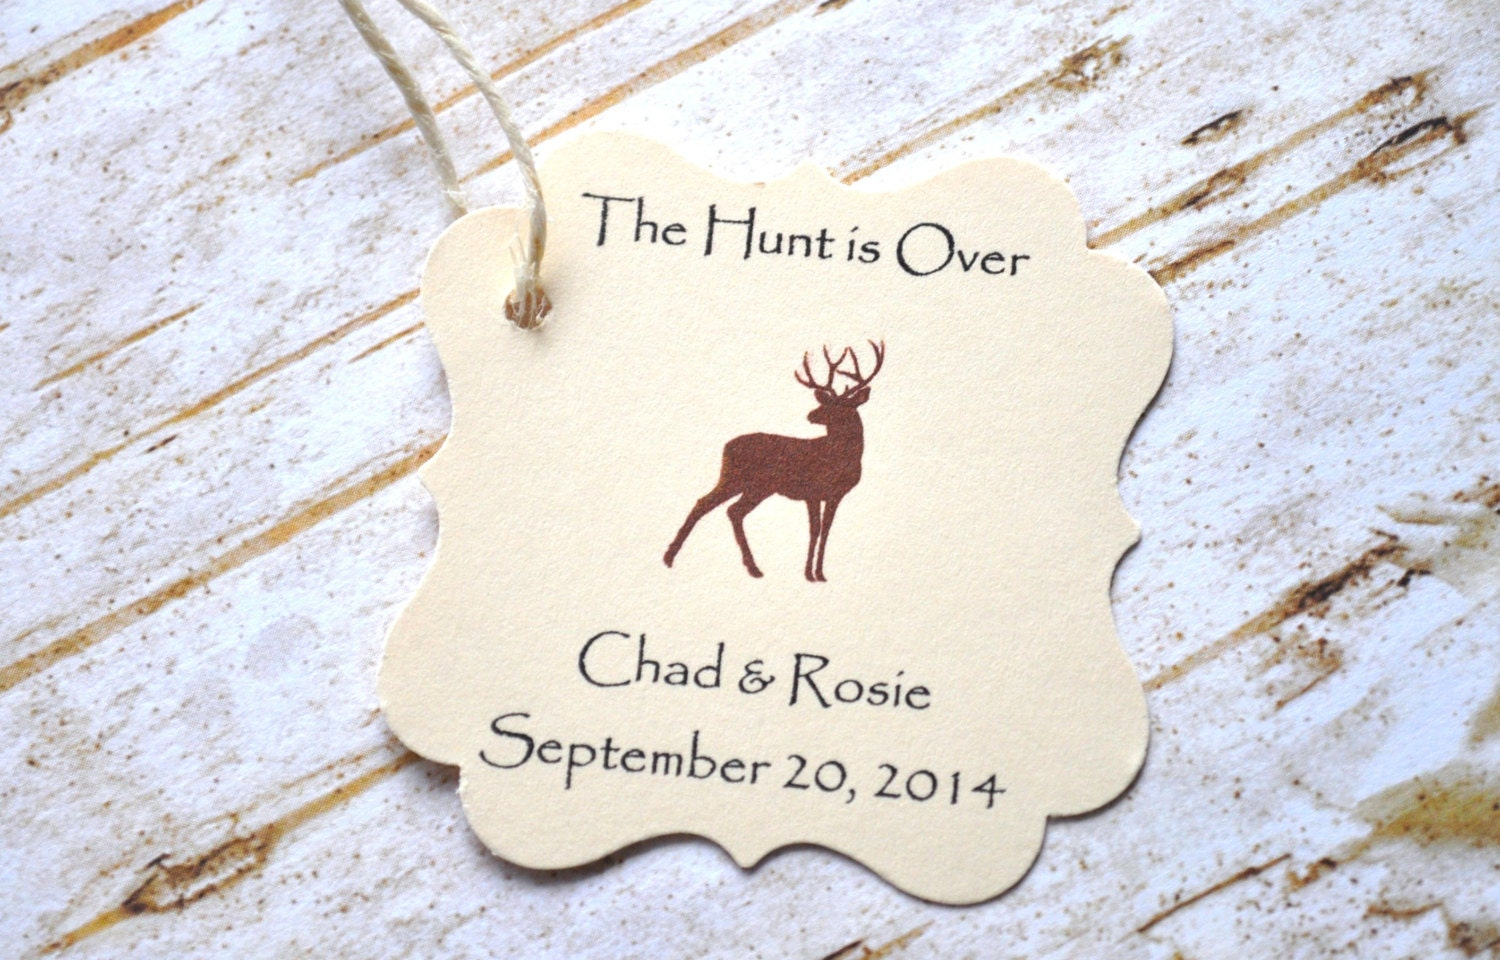 The Hunt is Over Favor Tags Wedding Favors Deer Favor Tags